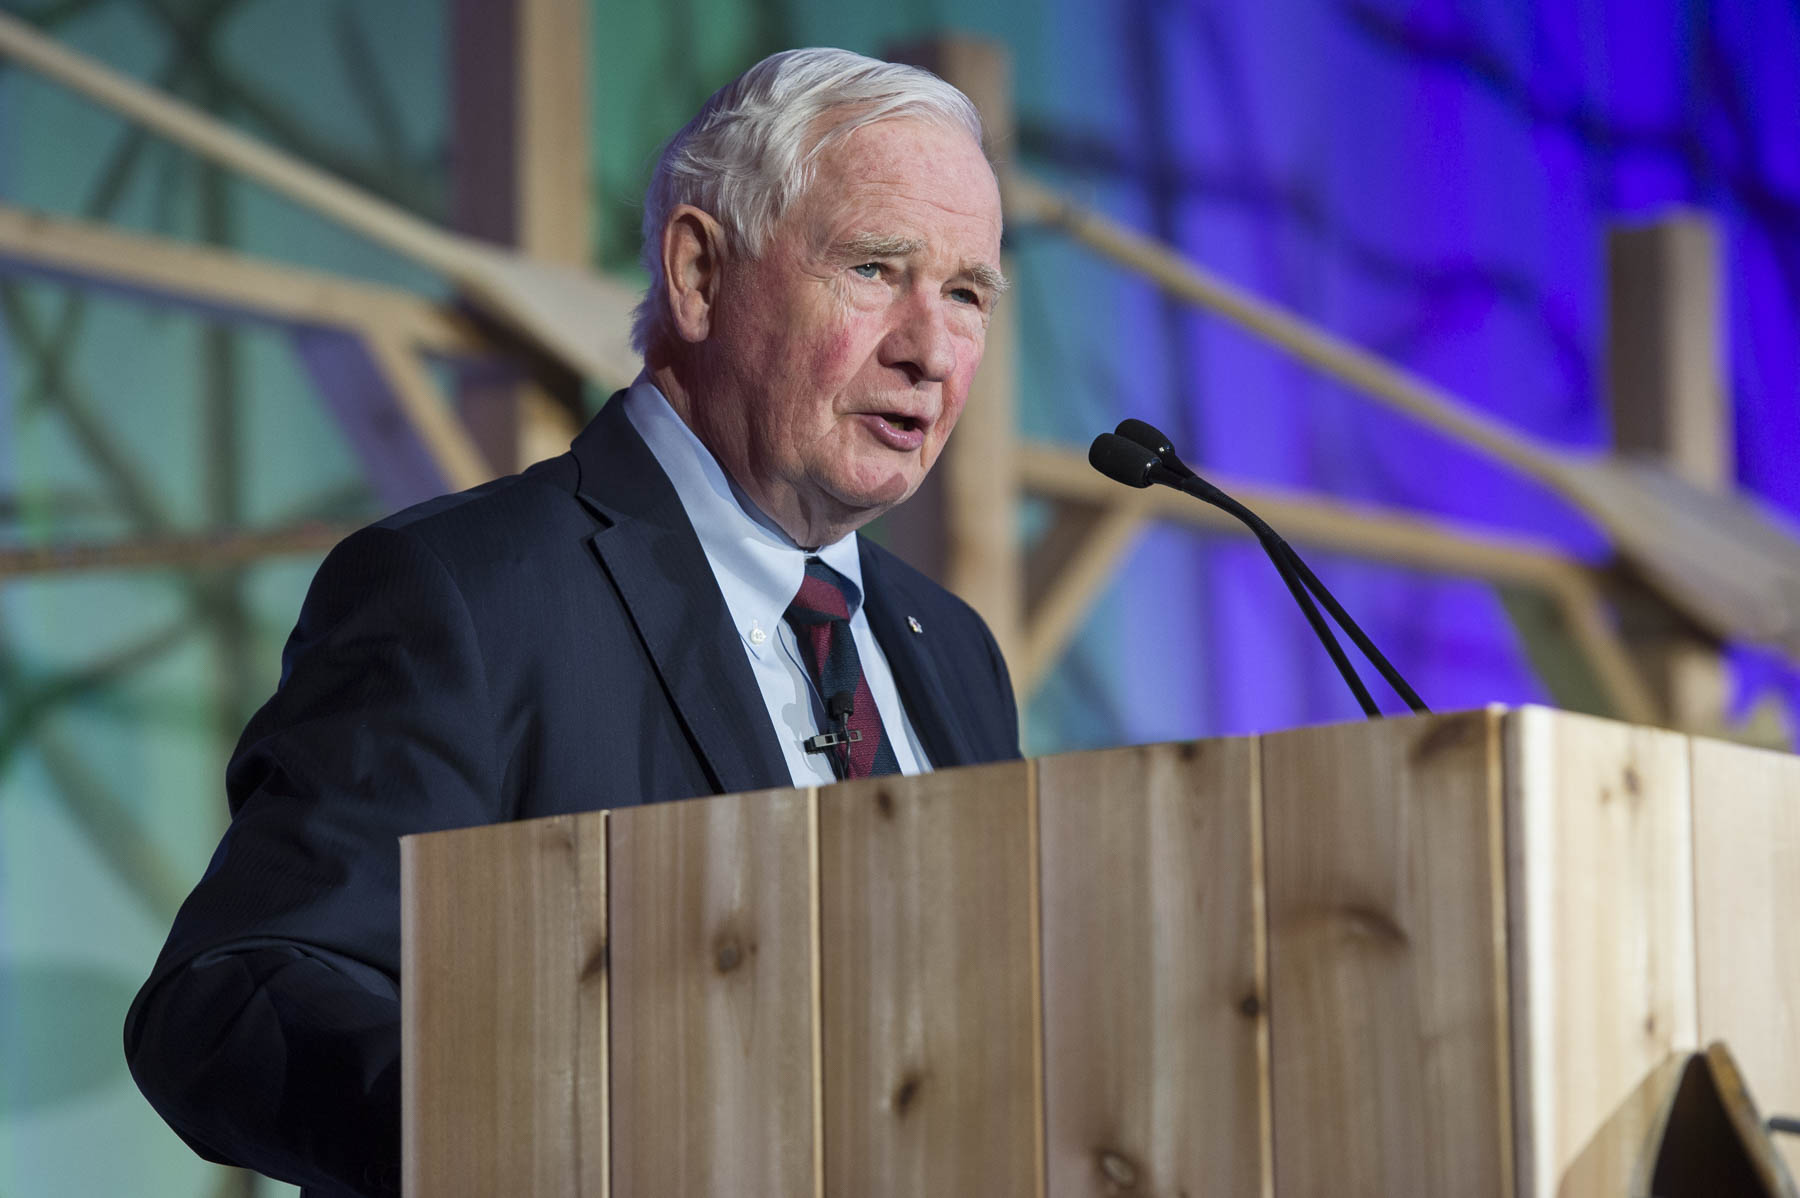 His Excellency the Right Honourable David Johnston, Governor General of Canada, delivered a keynote address to open the 2017 Community Foundations Conference.